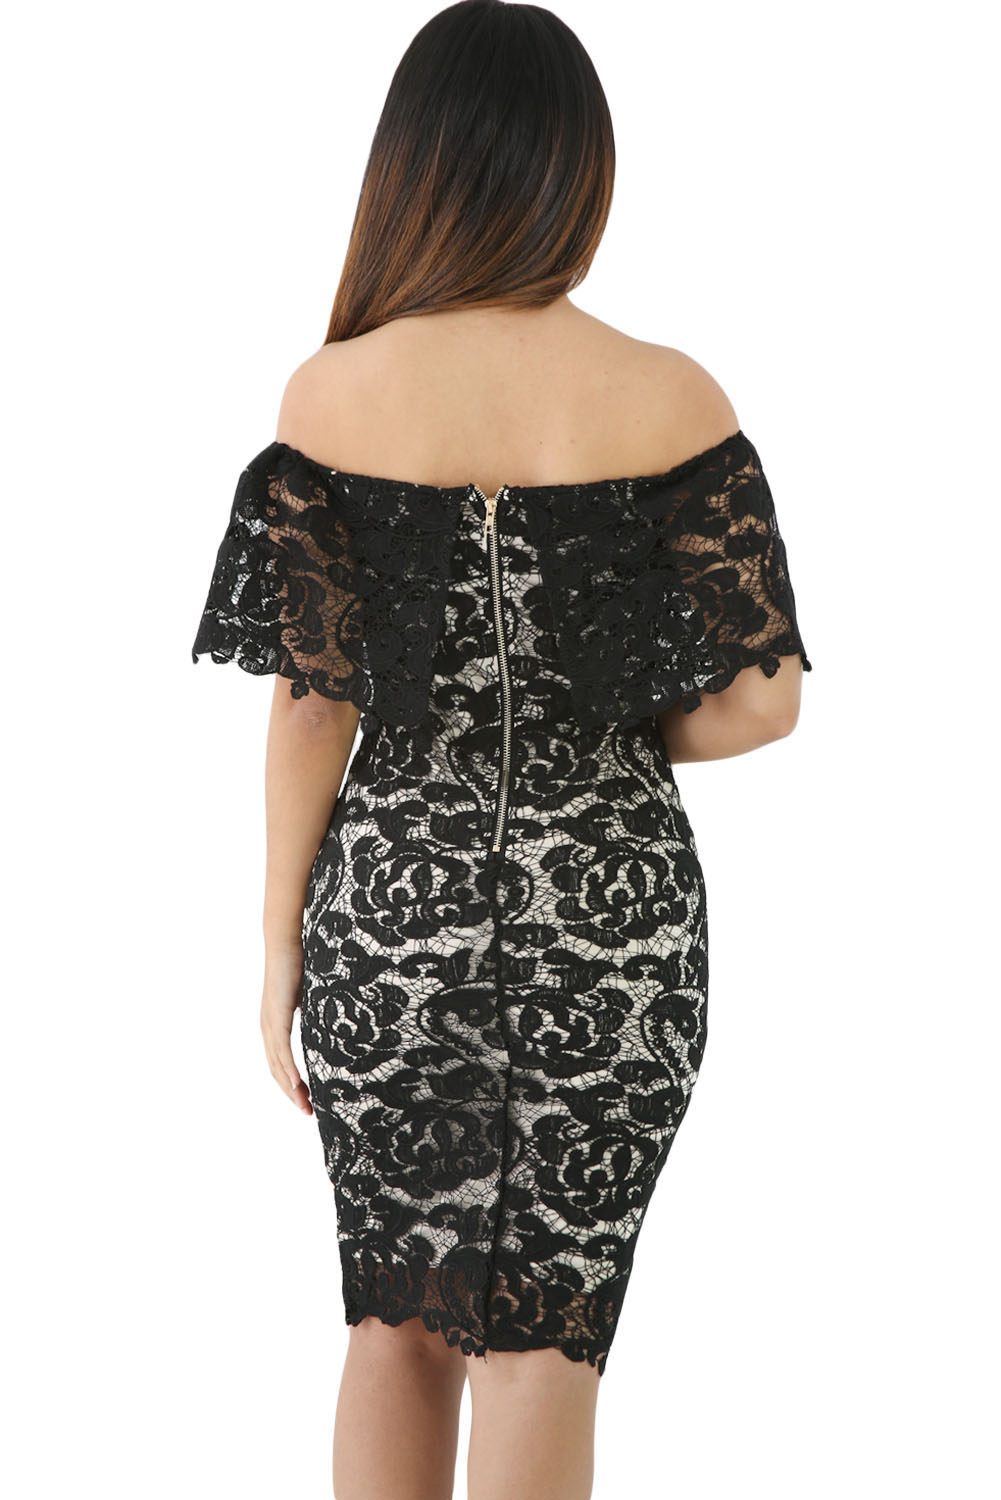 Black Lace Off Shoulder Bodycon Dress